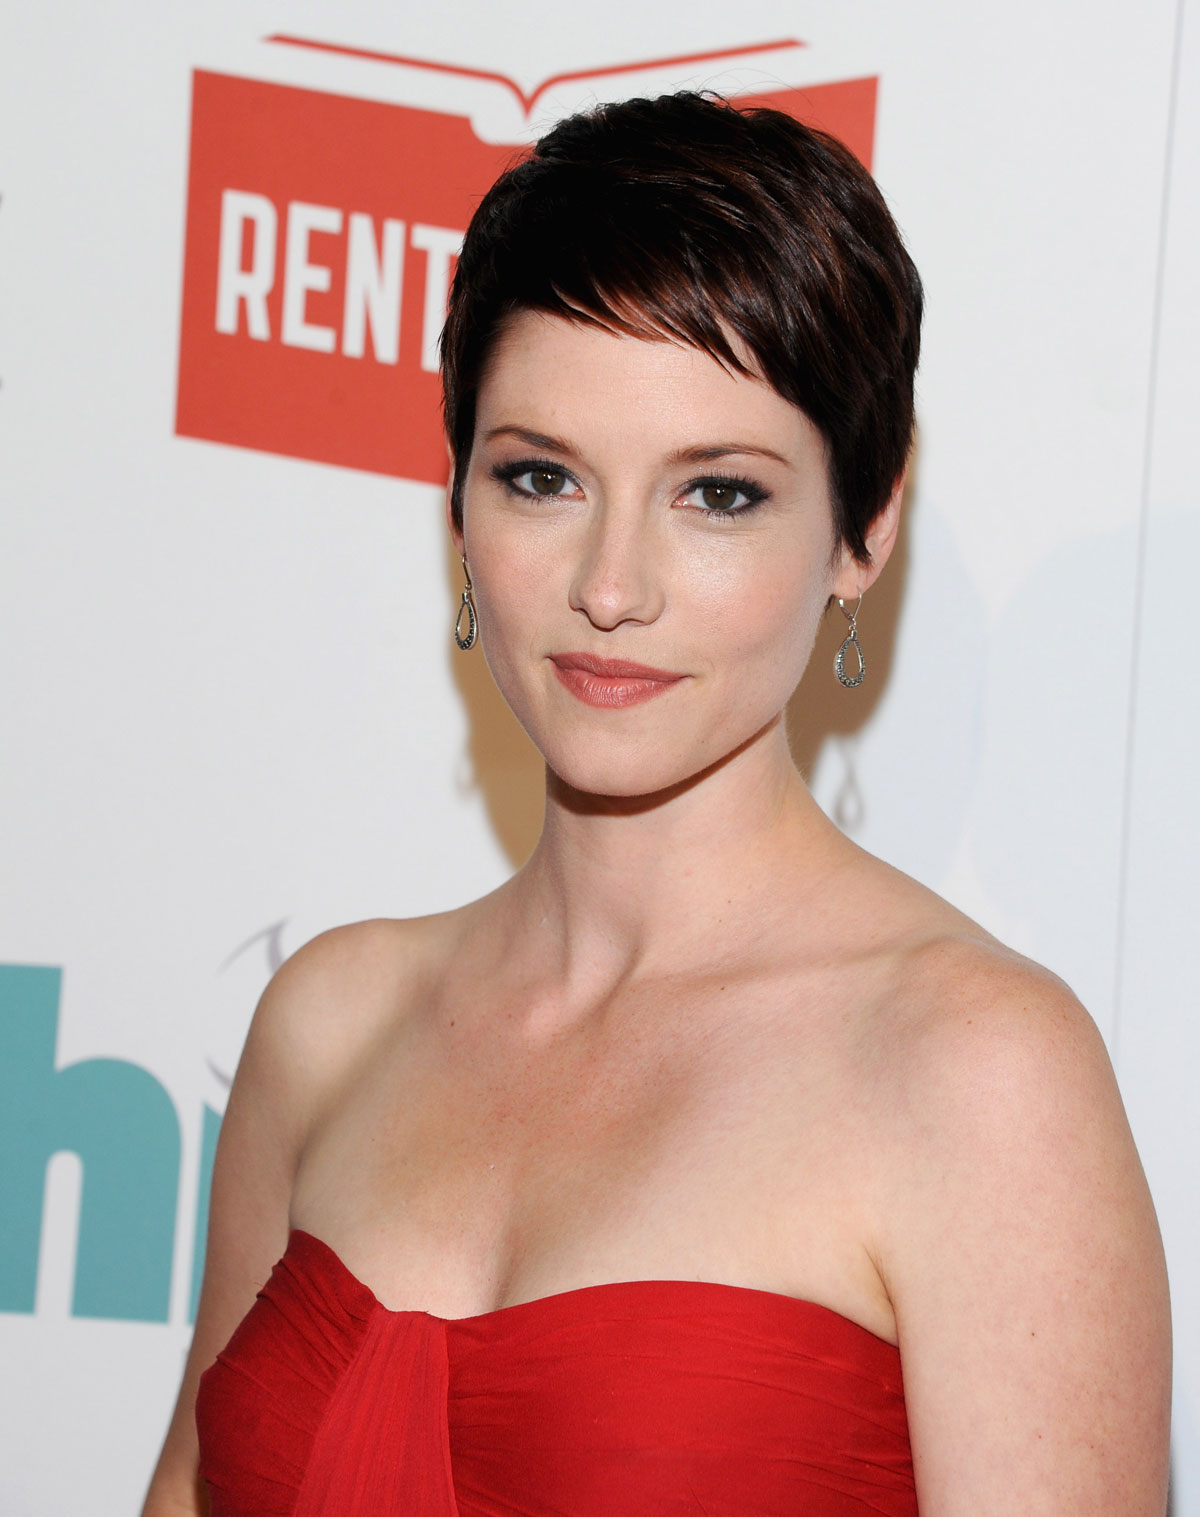 look 2 chyler - photo #1